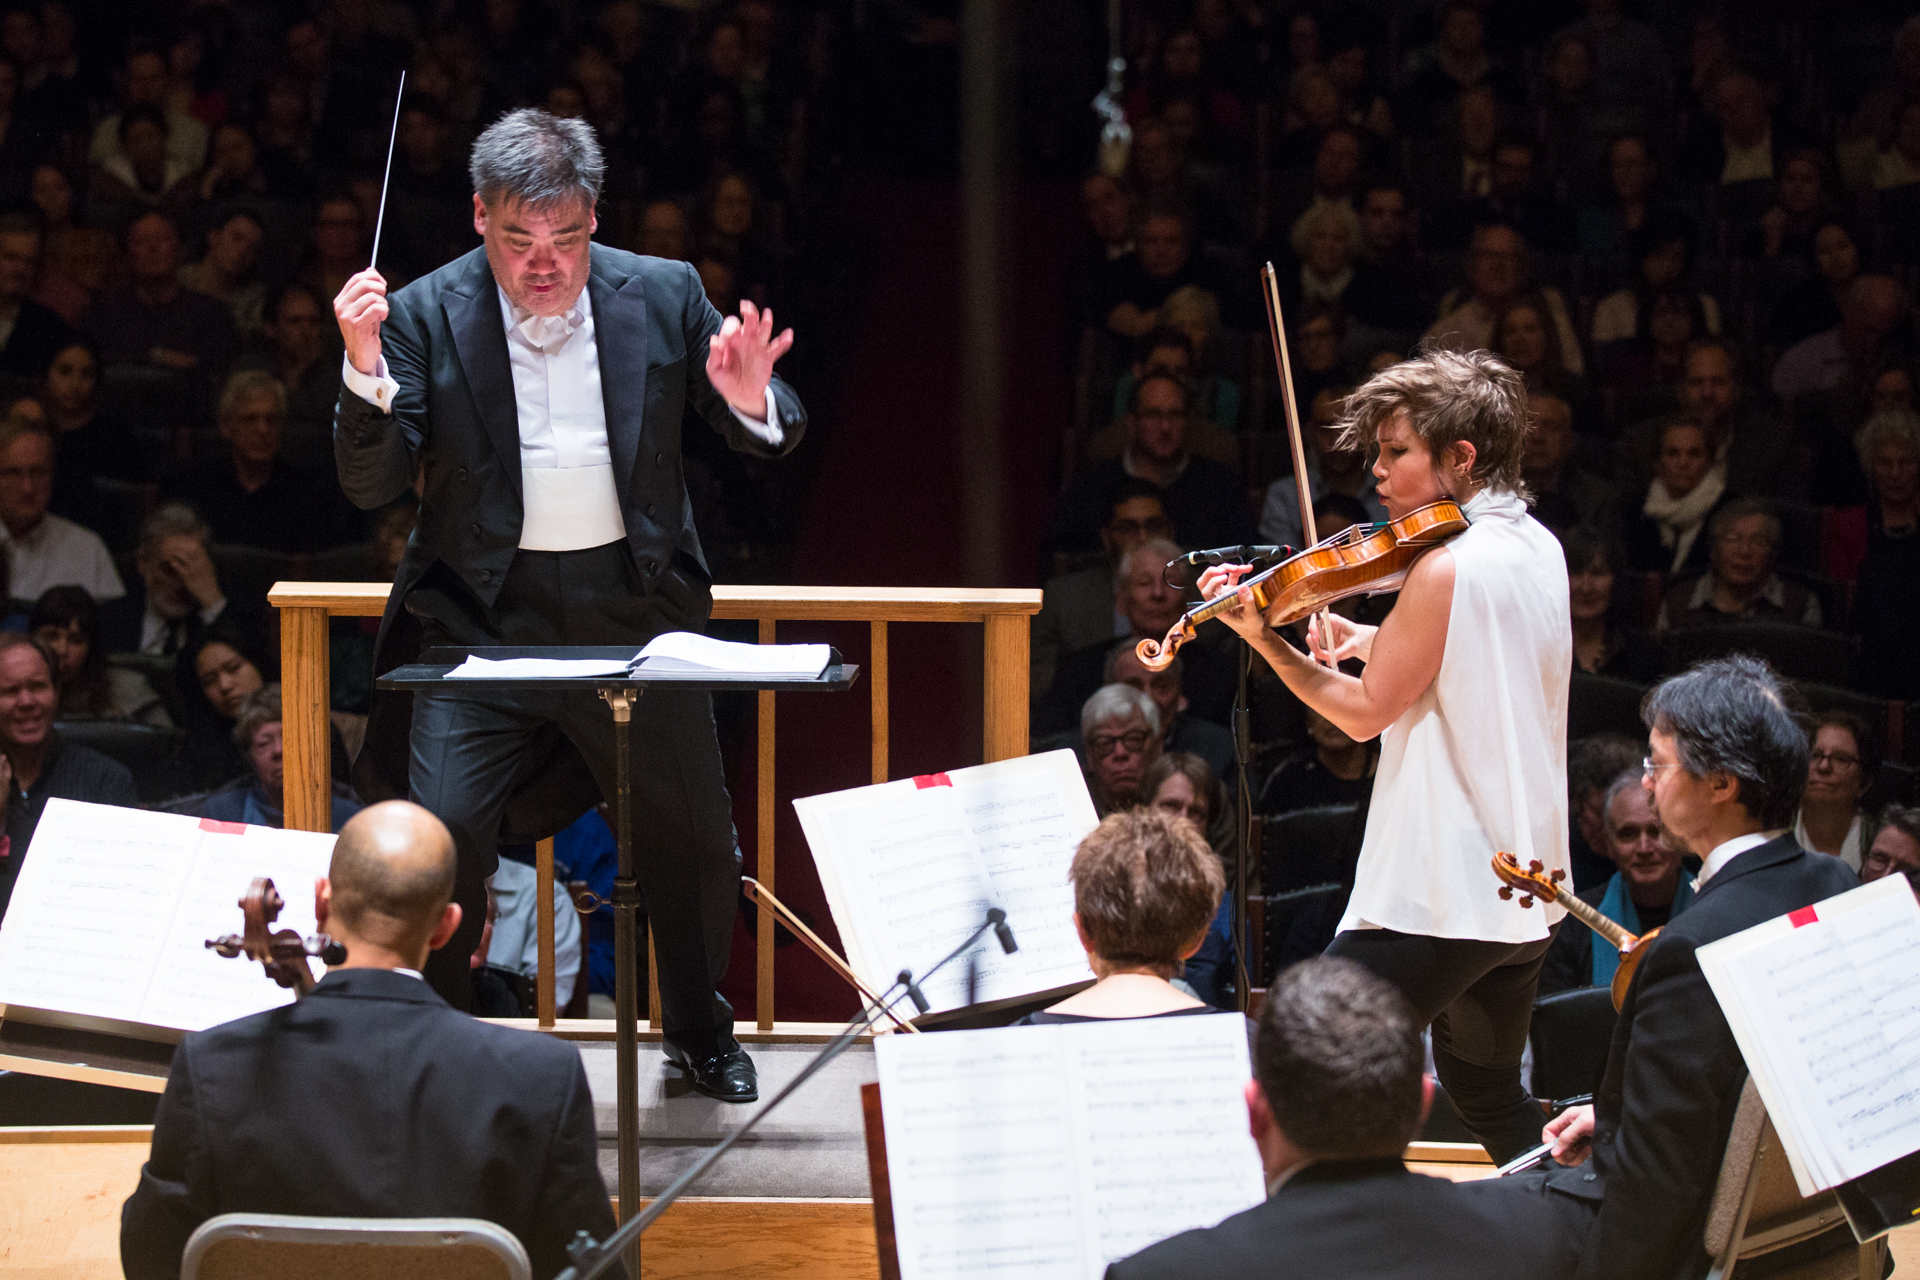 Alan Gilbert conducts the Boston Symphony Orchestra with violin soloist Leila Josefowicz, Thursday, March 1 in Symphony Hall. Robert Torres photograph